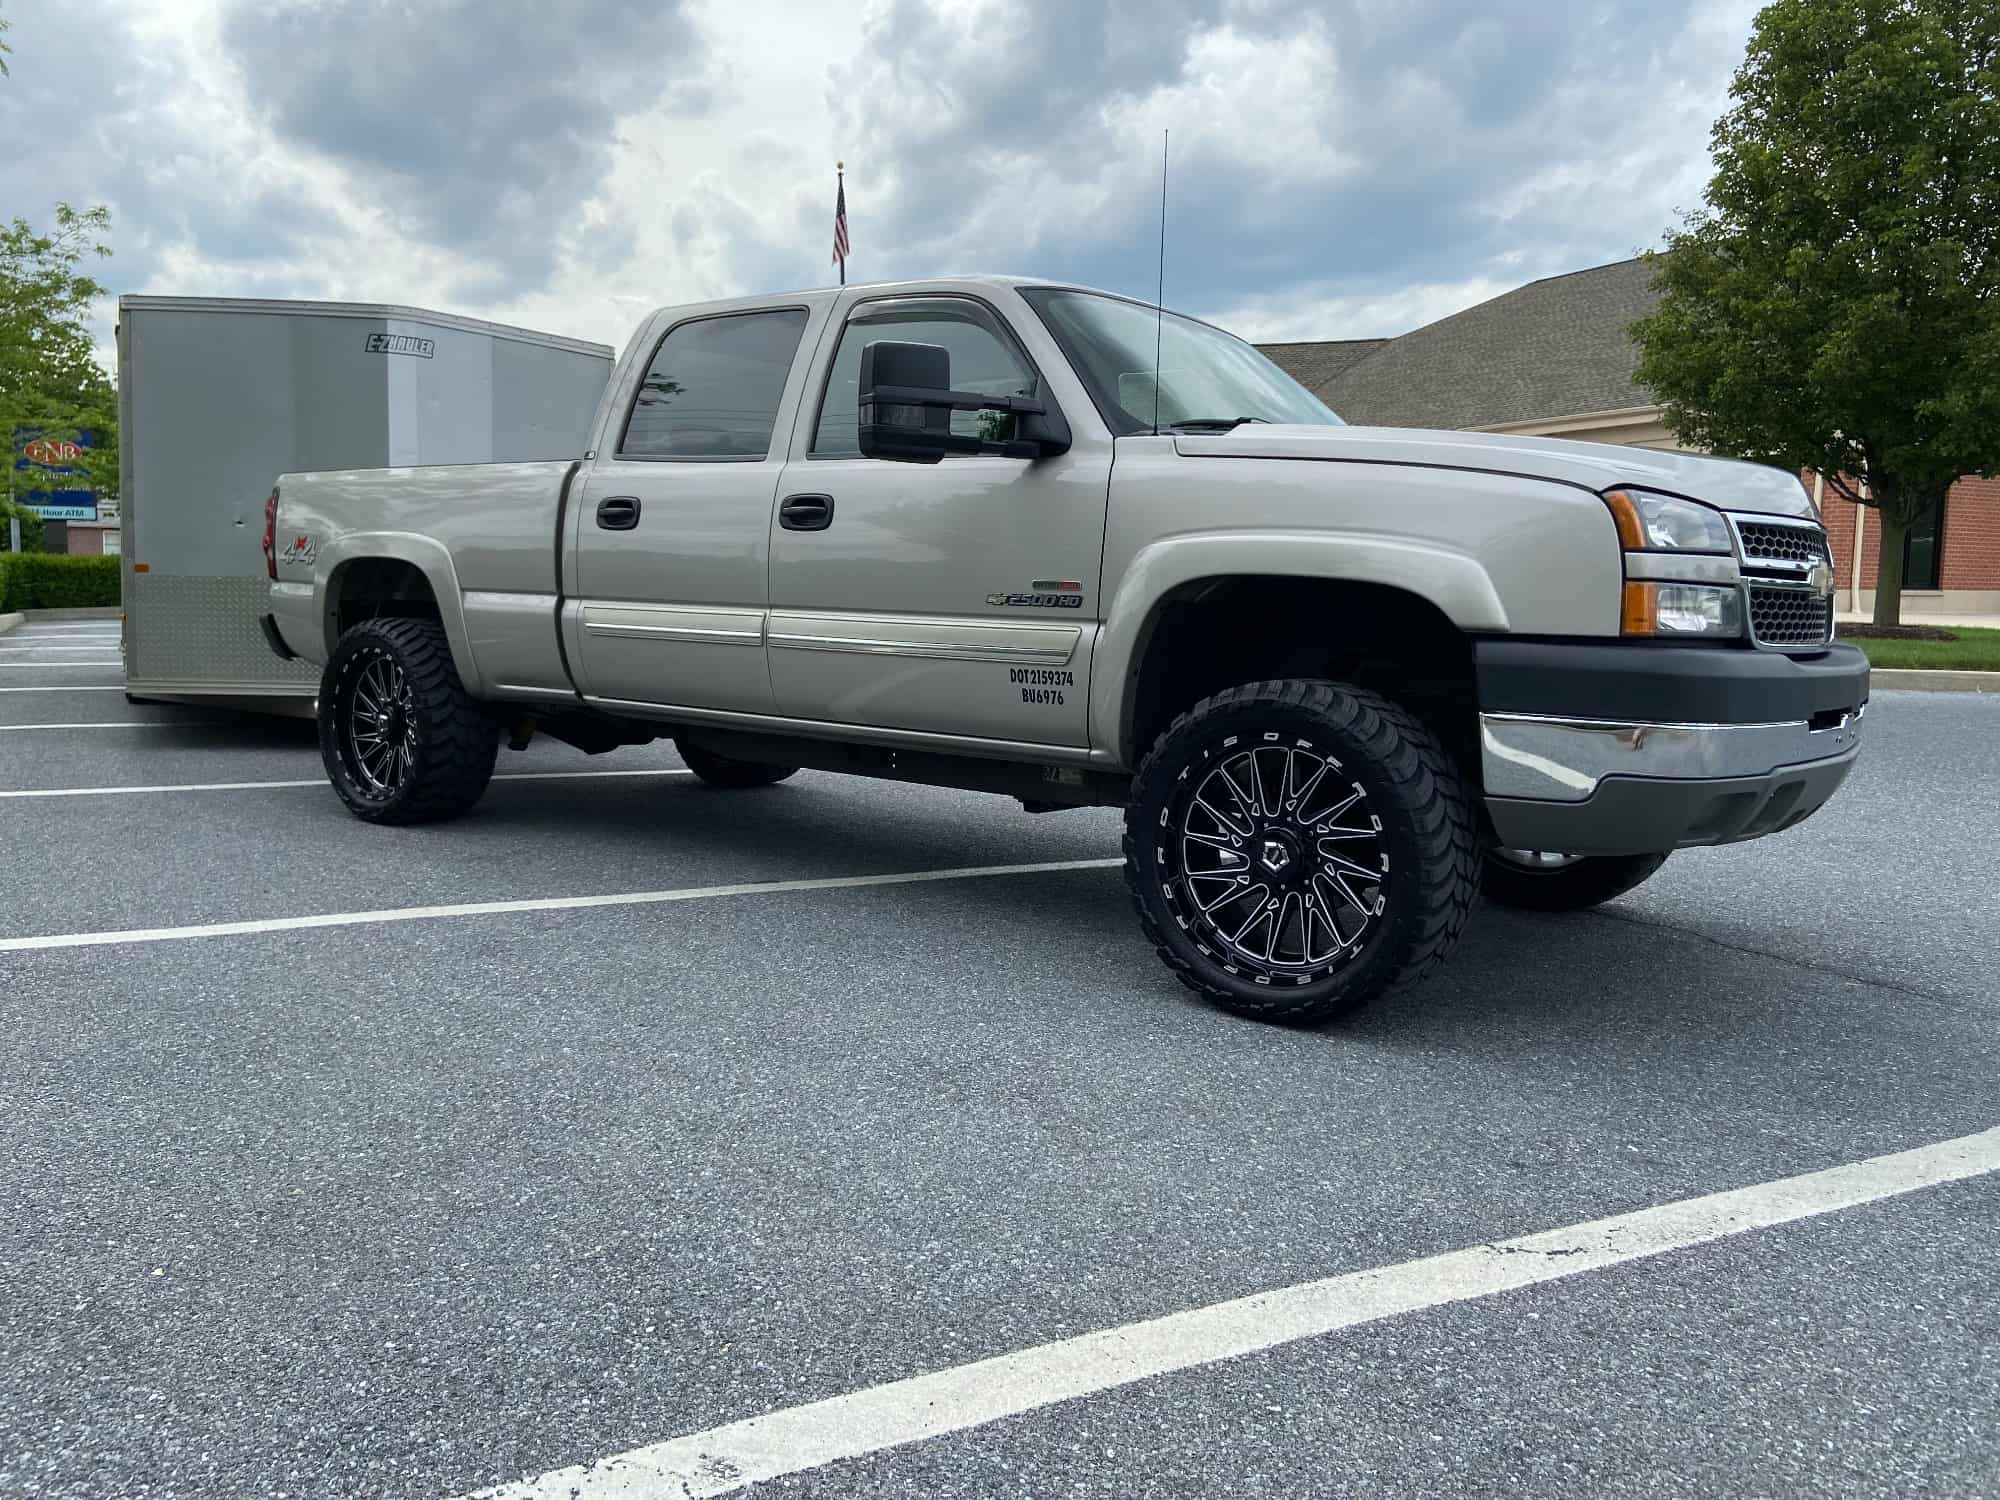 Chevy silverado pulling a trail with aftermarket wheels and tires